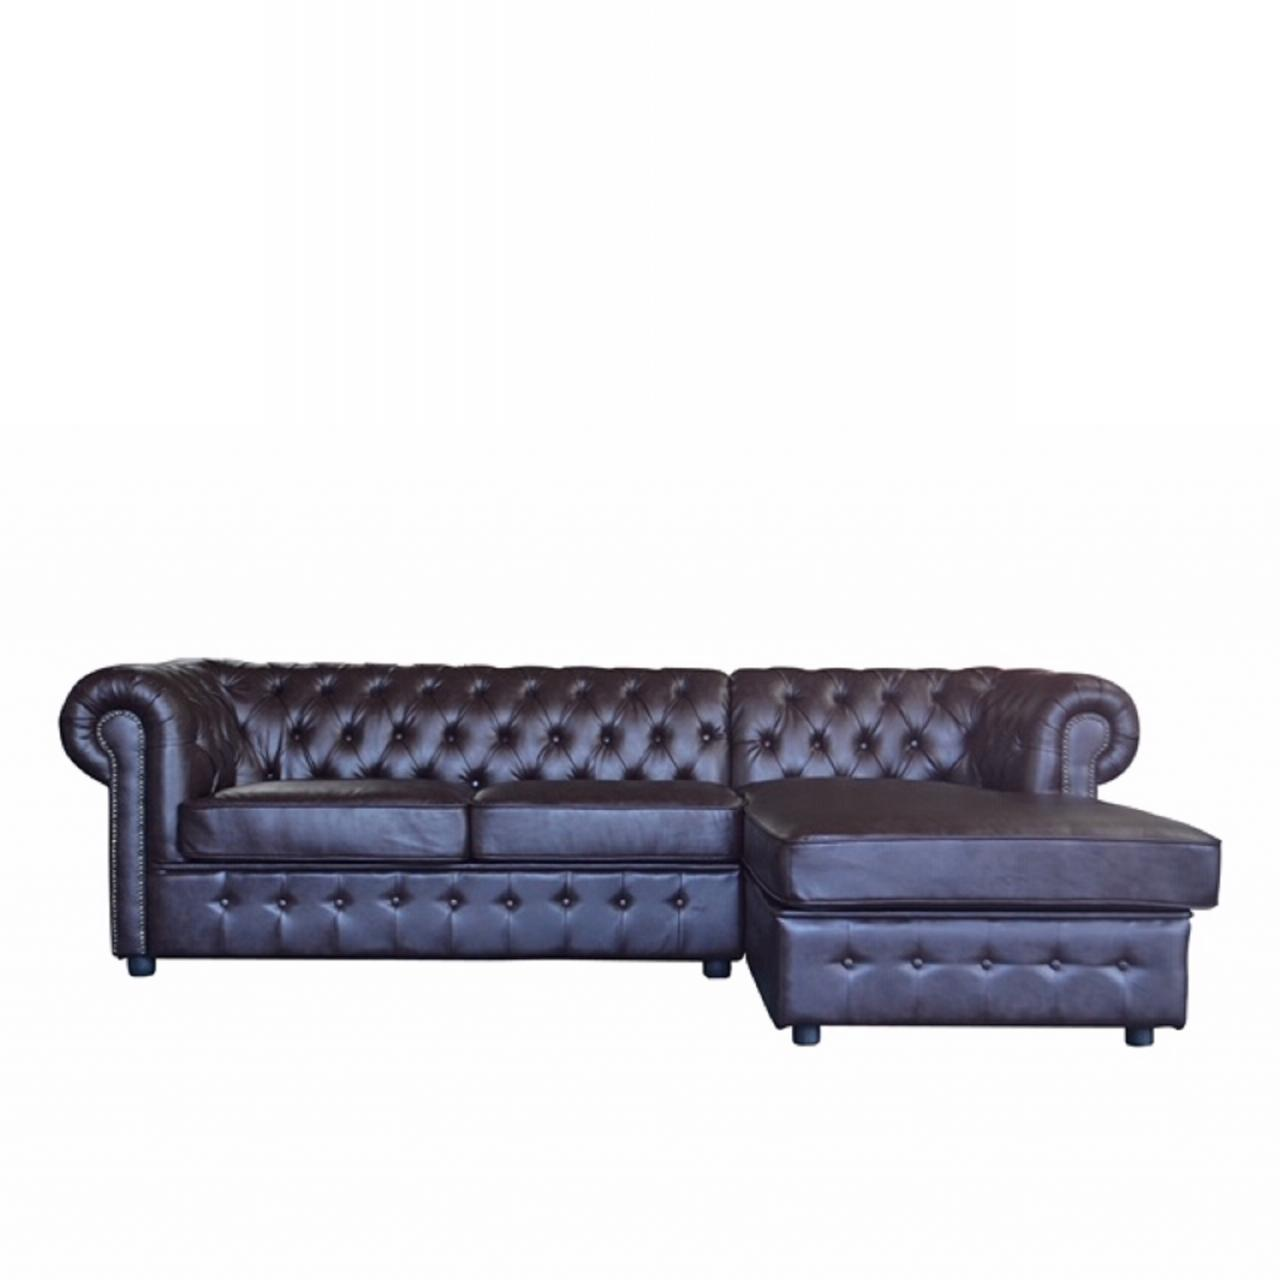 Ecksofa RFU-8010 Dark Coffee Polstergarnitur L-Form Sofa Couch